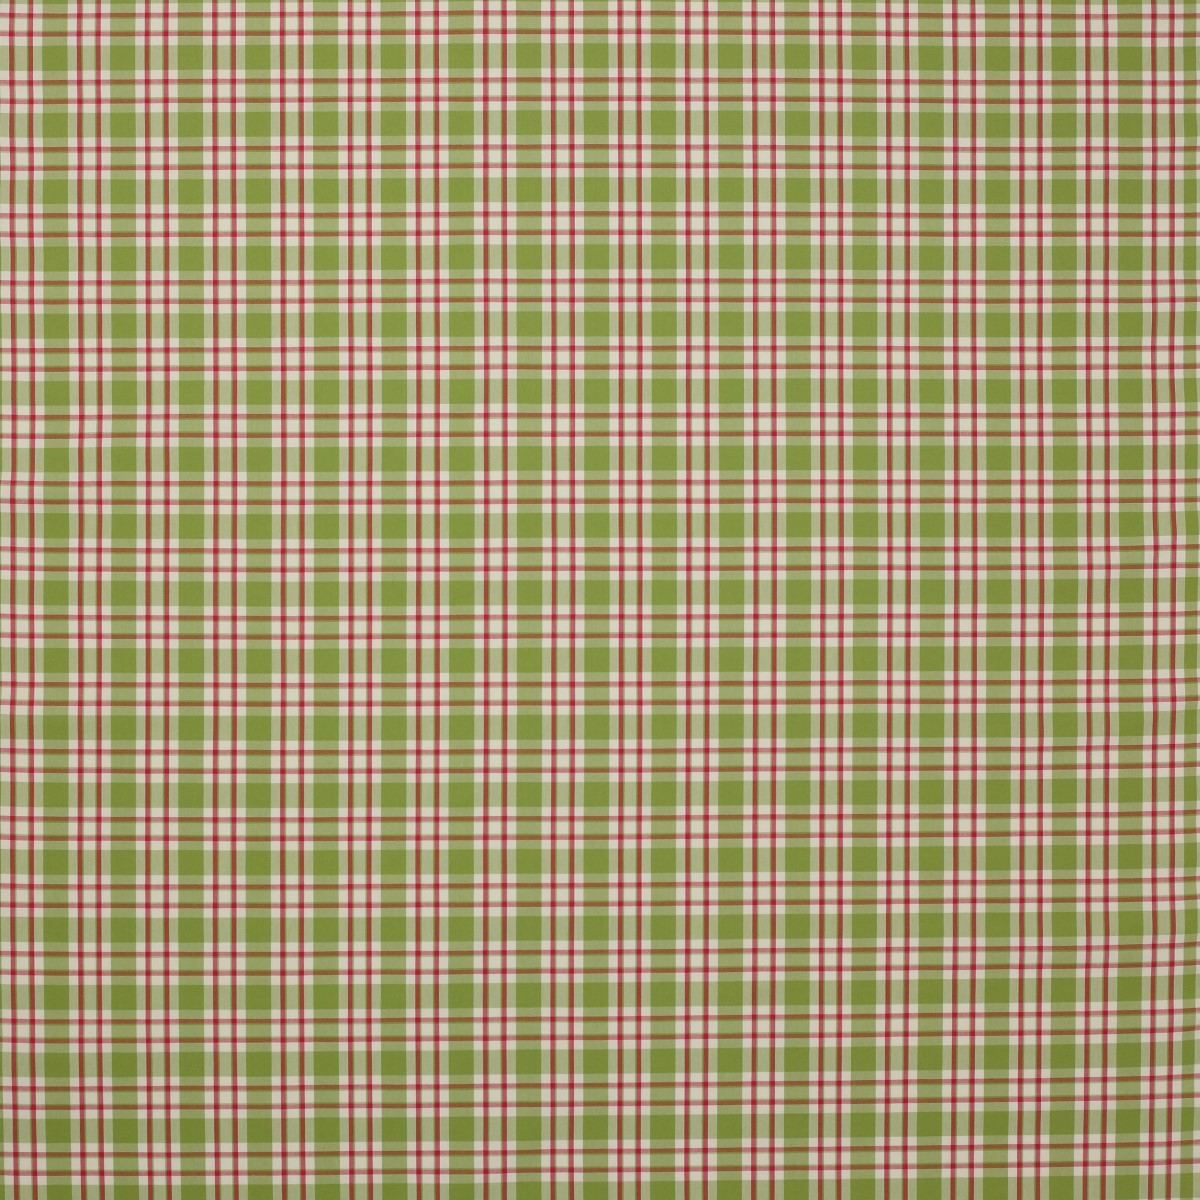 Talla Check - Green/Pink